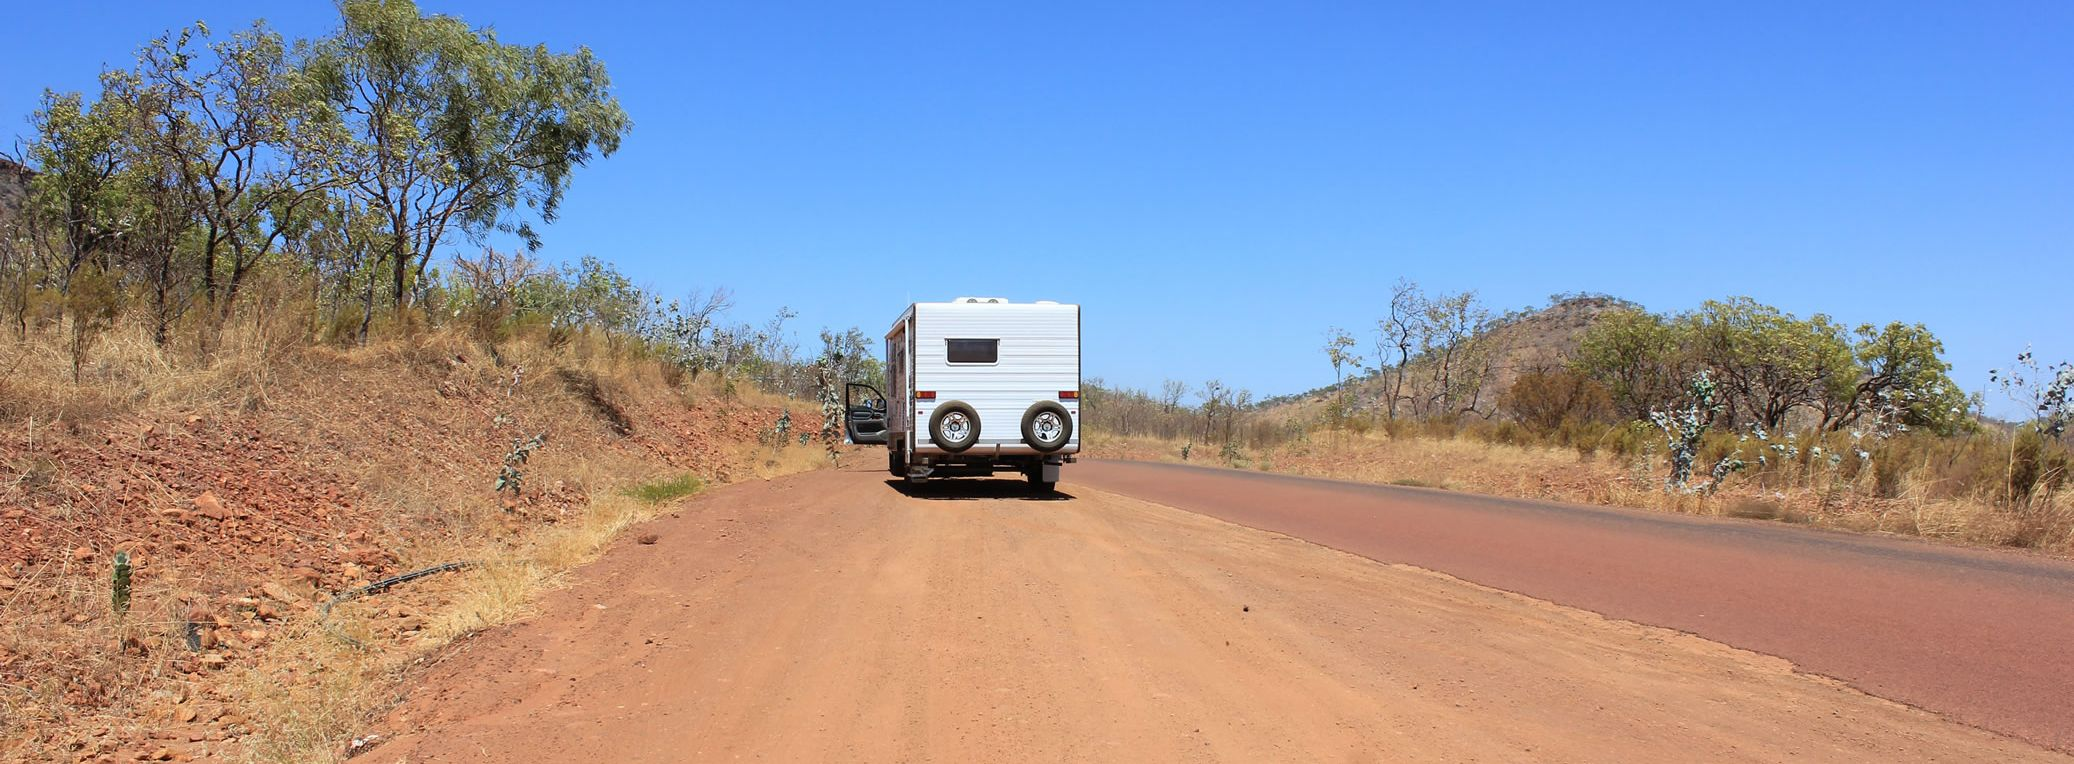 Caravan in the outback